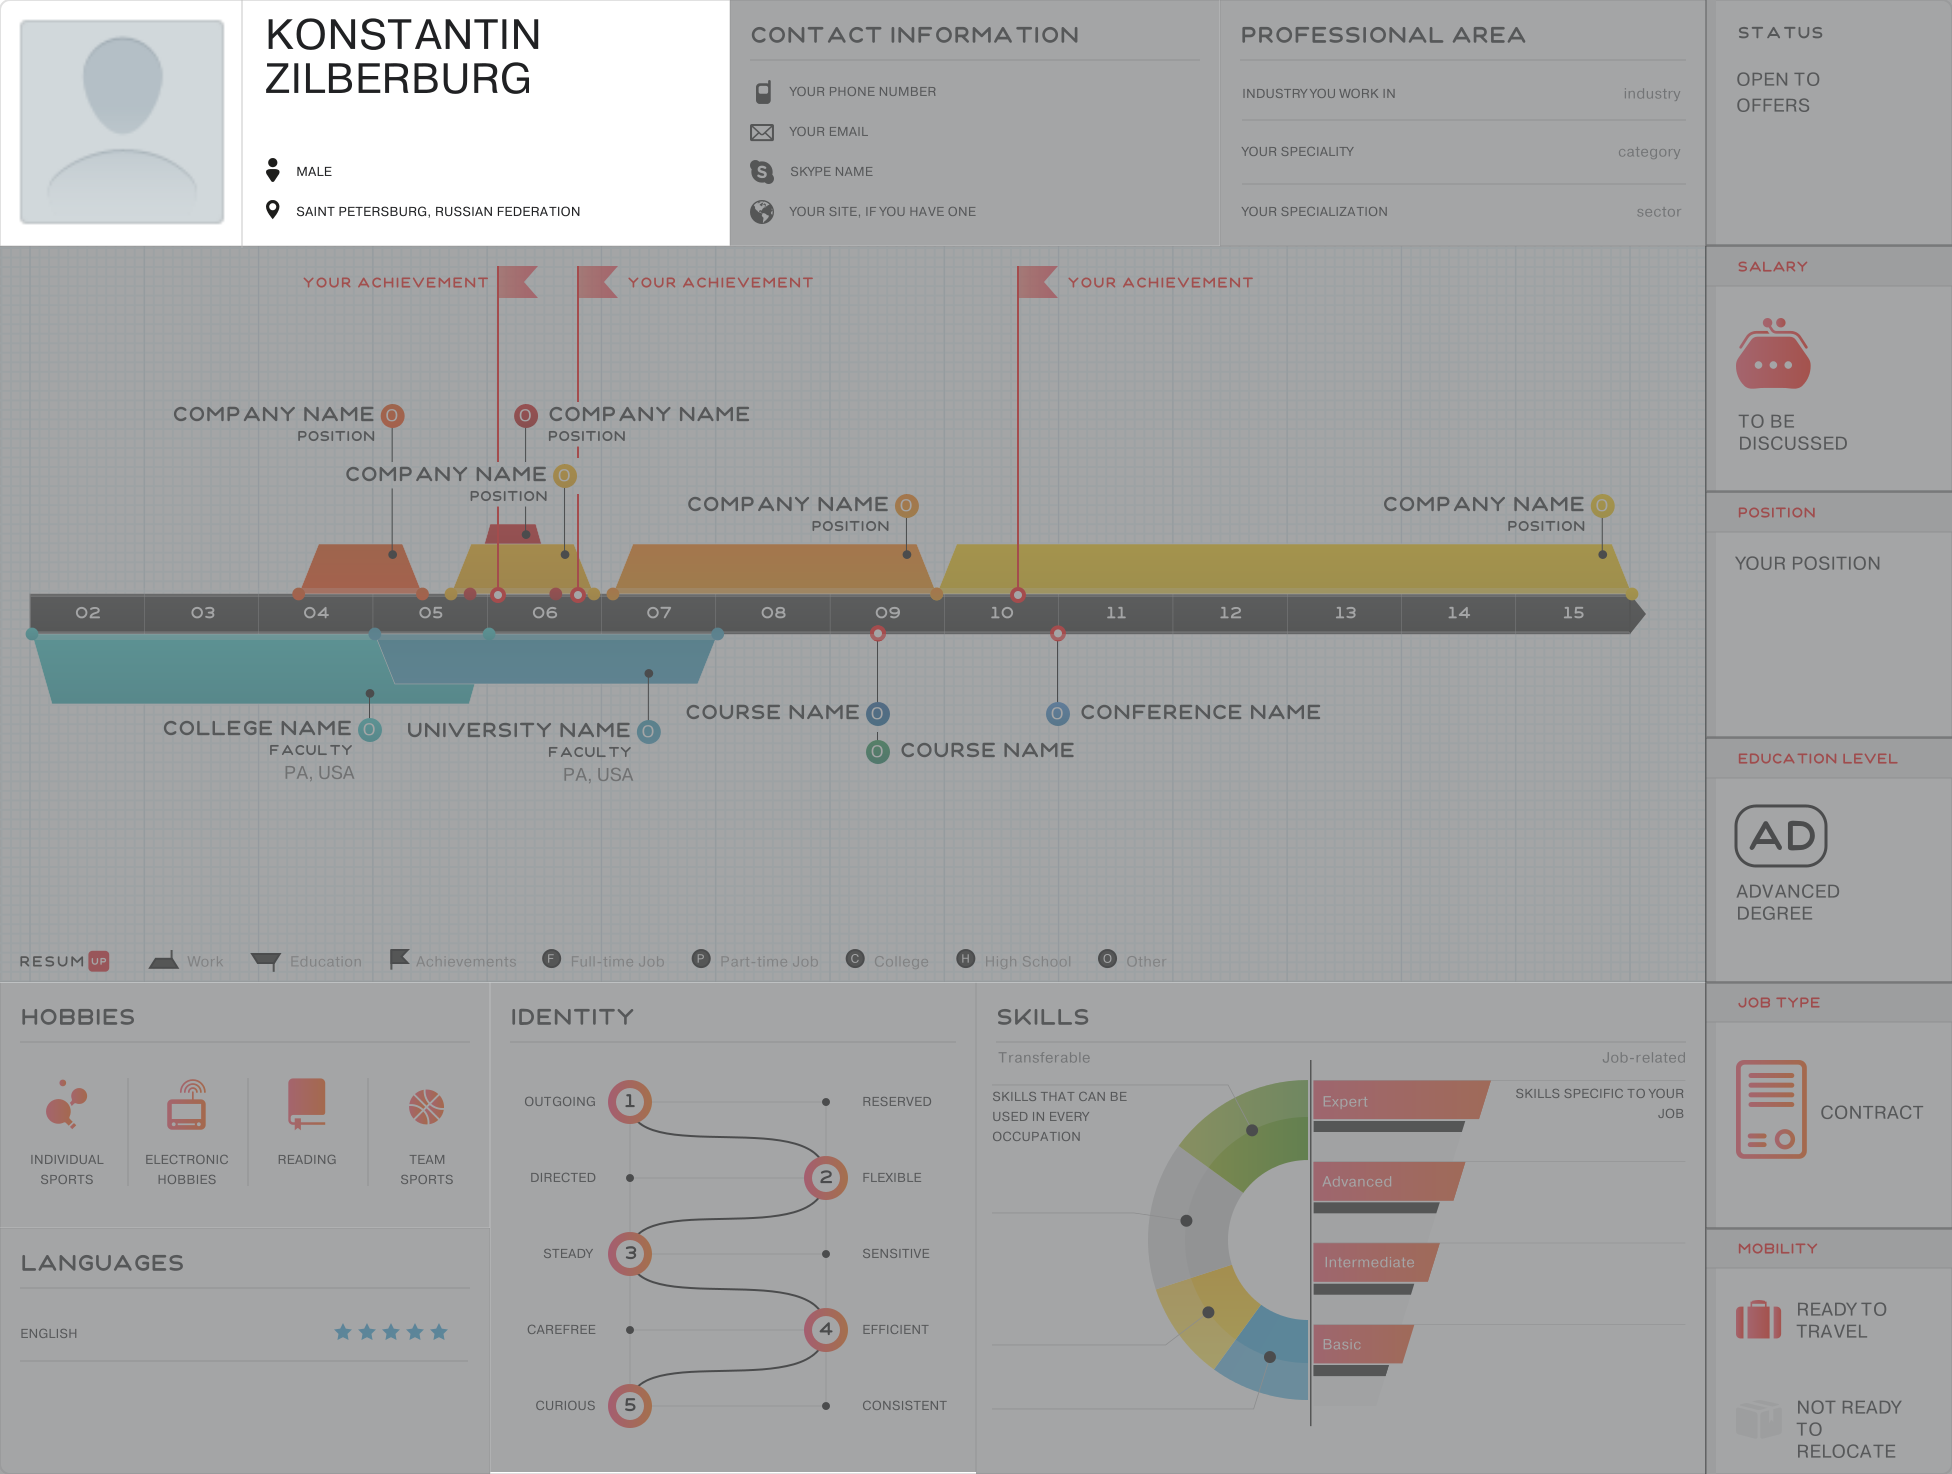 Konstantin Zilberburg - Visual Infographic resume